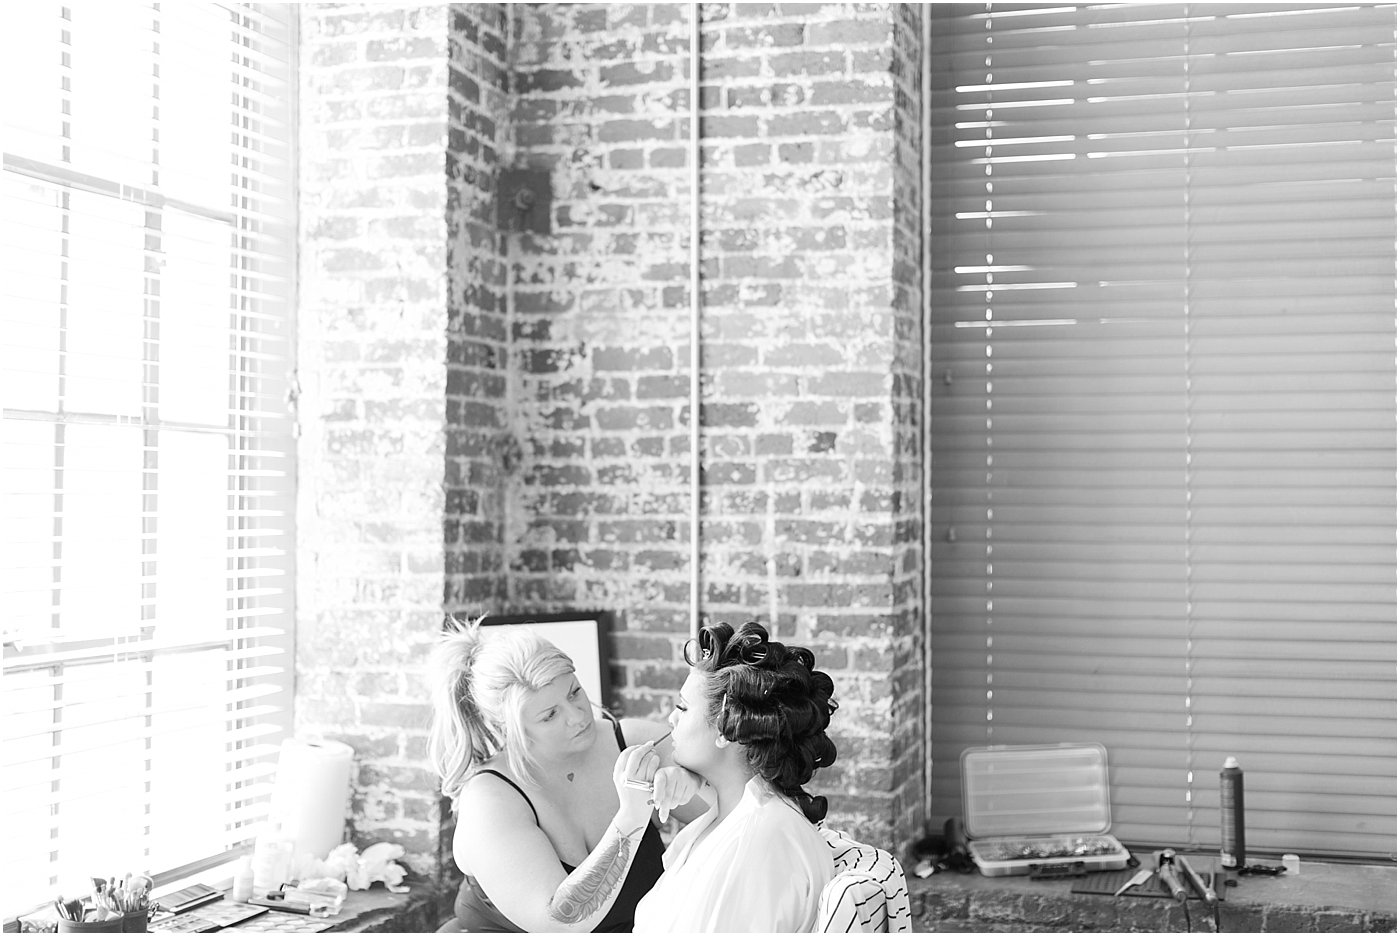 mill_at_yellow_river_porterdale_ga_wedding_photographers_0011.jpg